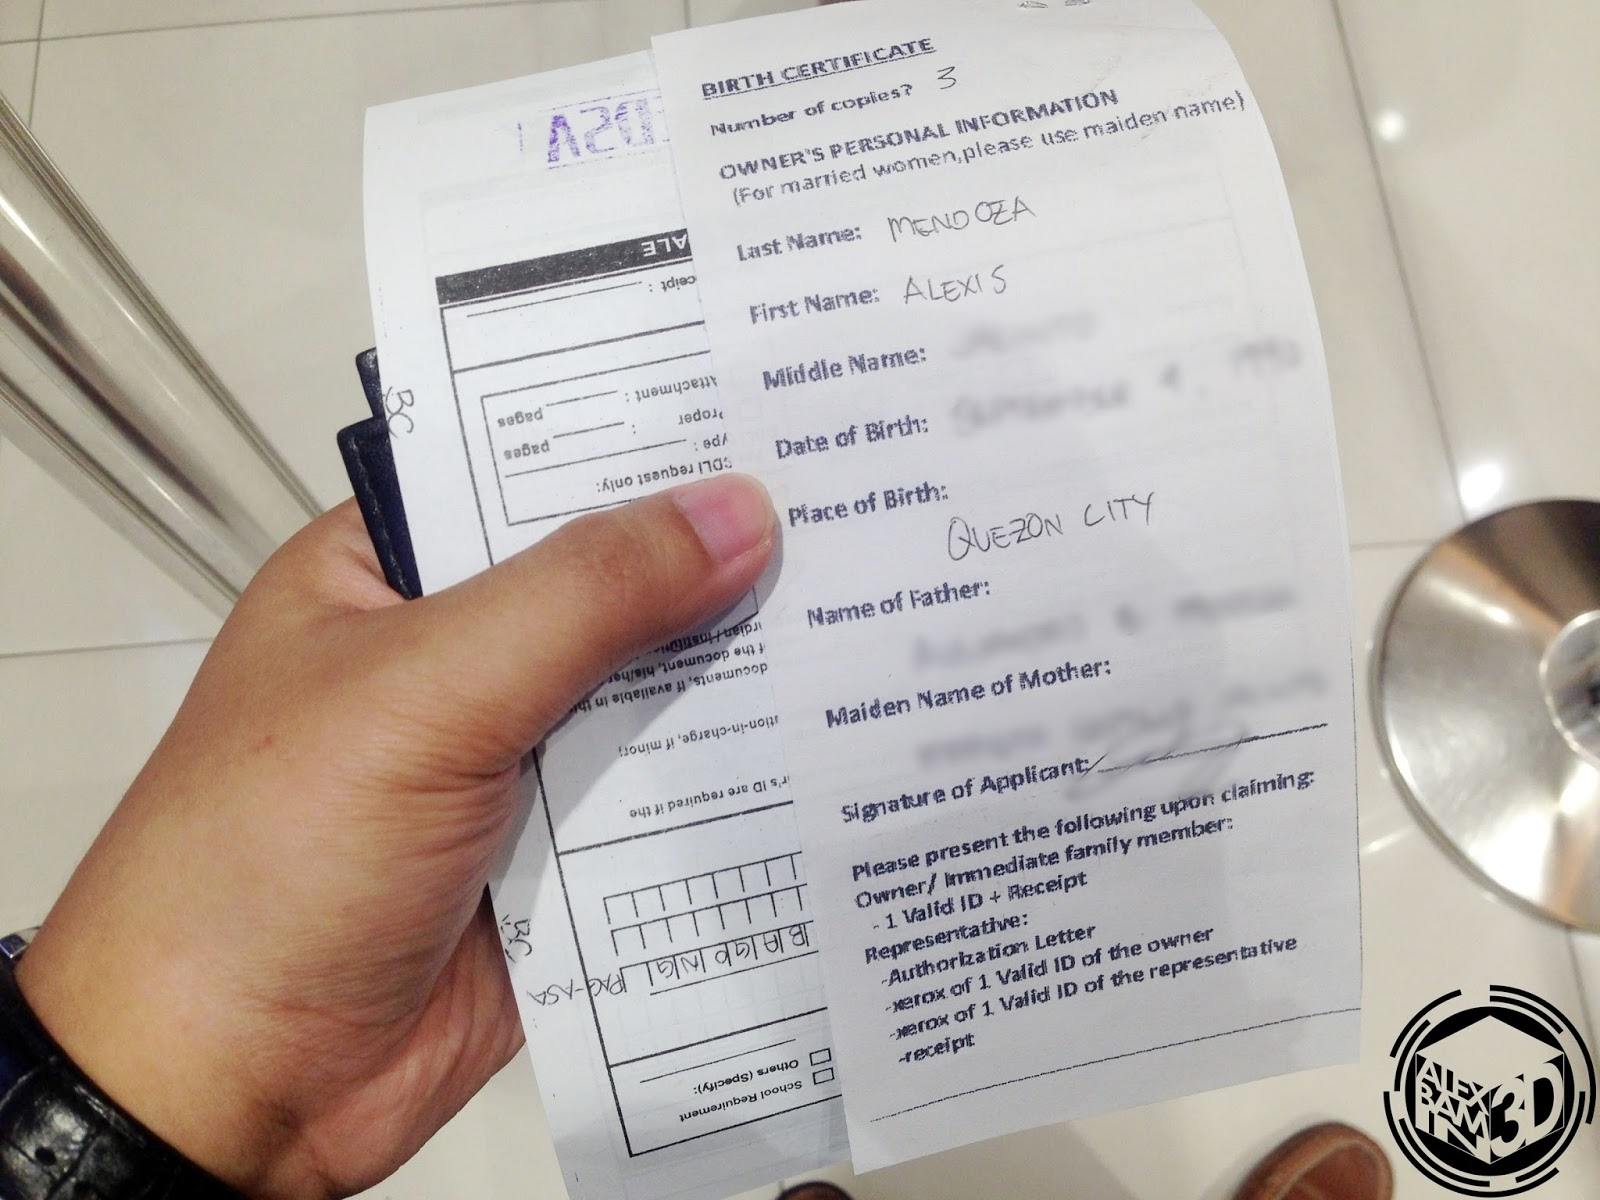 Getting your nso birth certificate at sm business center alexbamin3d payment for your birth certificate copy is 140php each same as when you request directly at nso sm charges an additional 20php aiddatafo Gallery